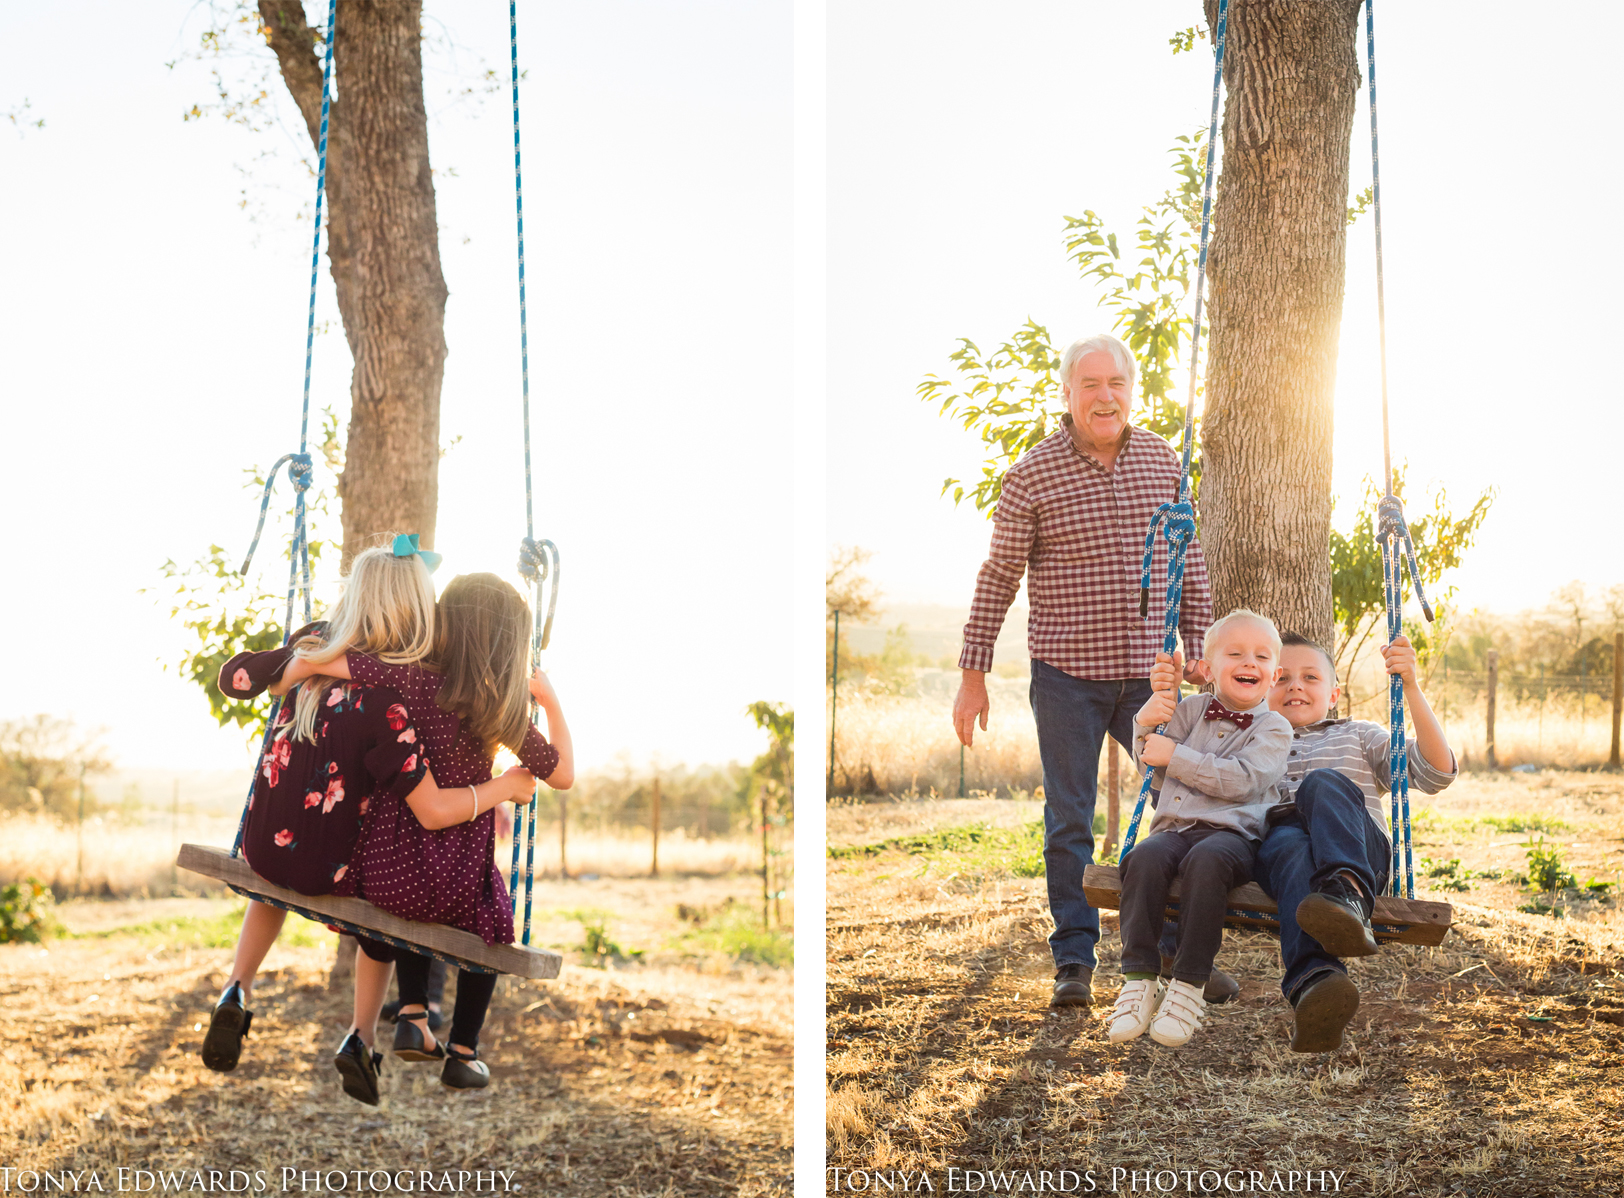 Tonya Edwards | Oroville Photographer | kids swinging on a swing hanging from big oak tree pushed by grandpa